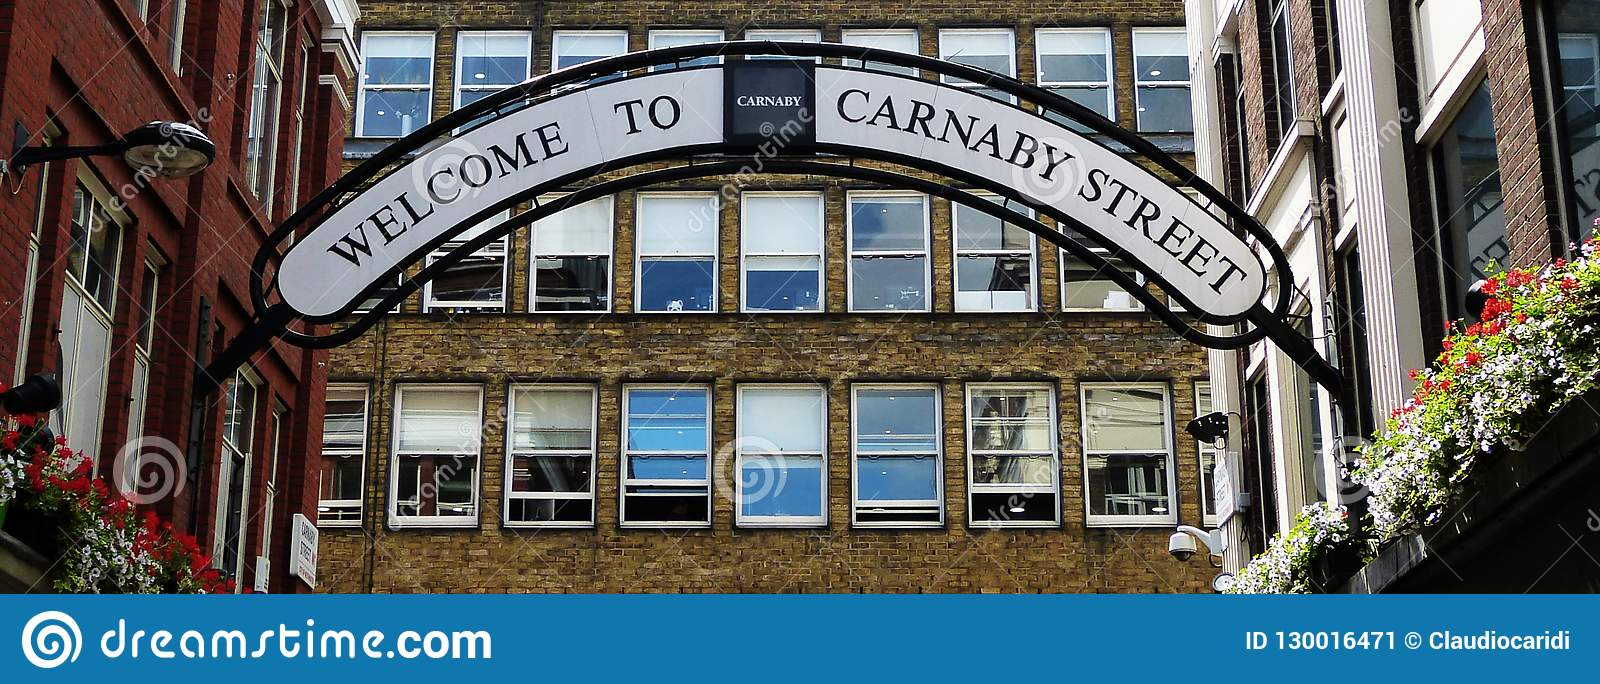 Sign of Carnaby Street in London